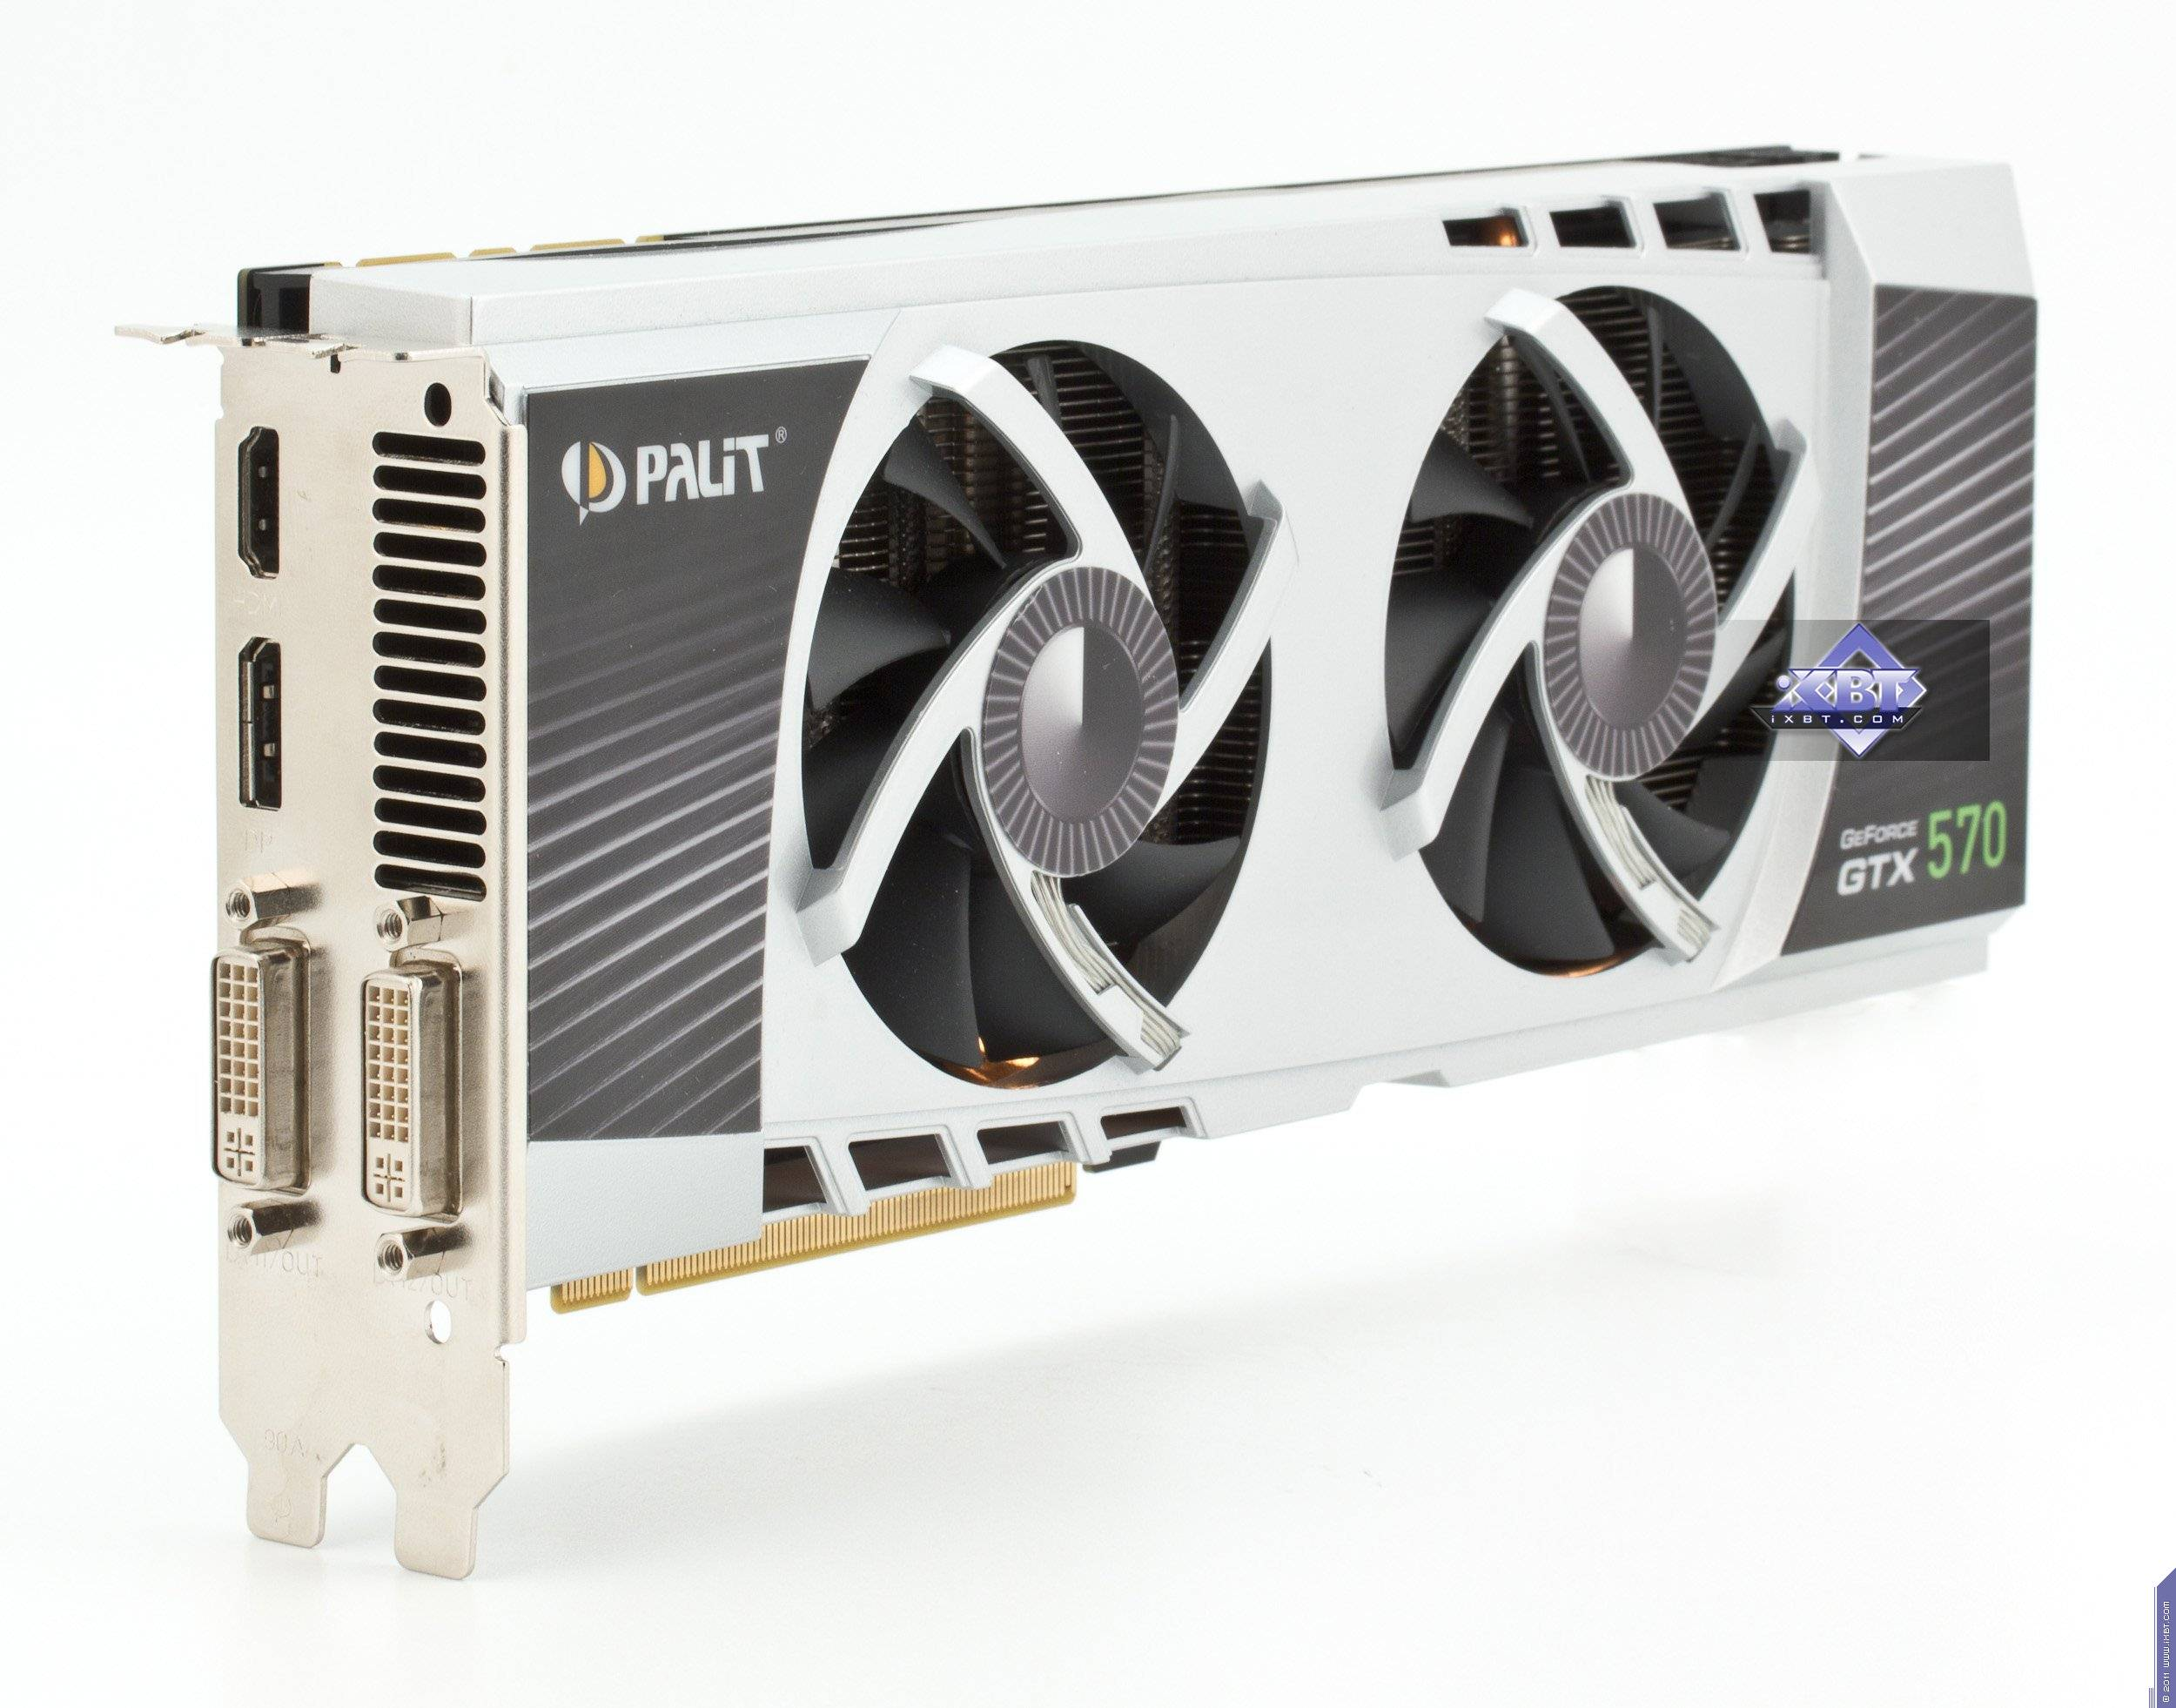 geforce gtx 570 latest driver